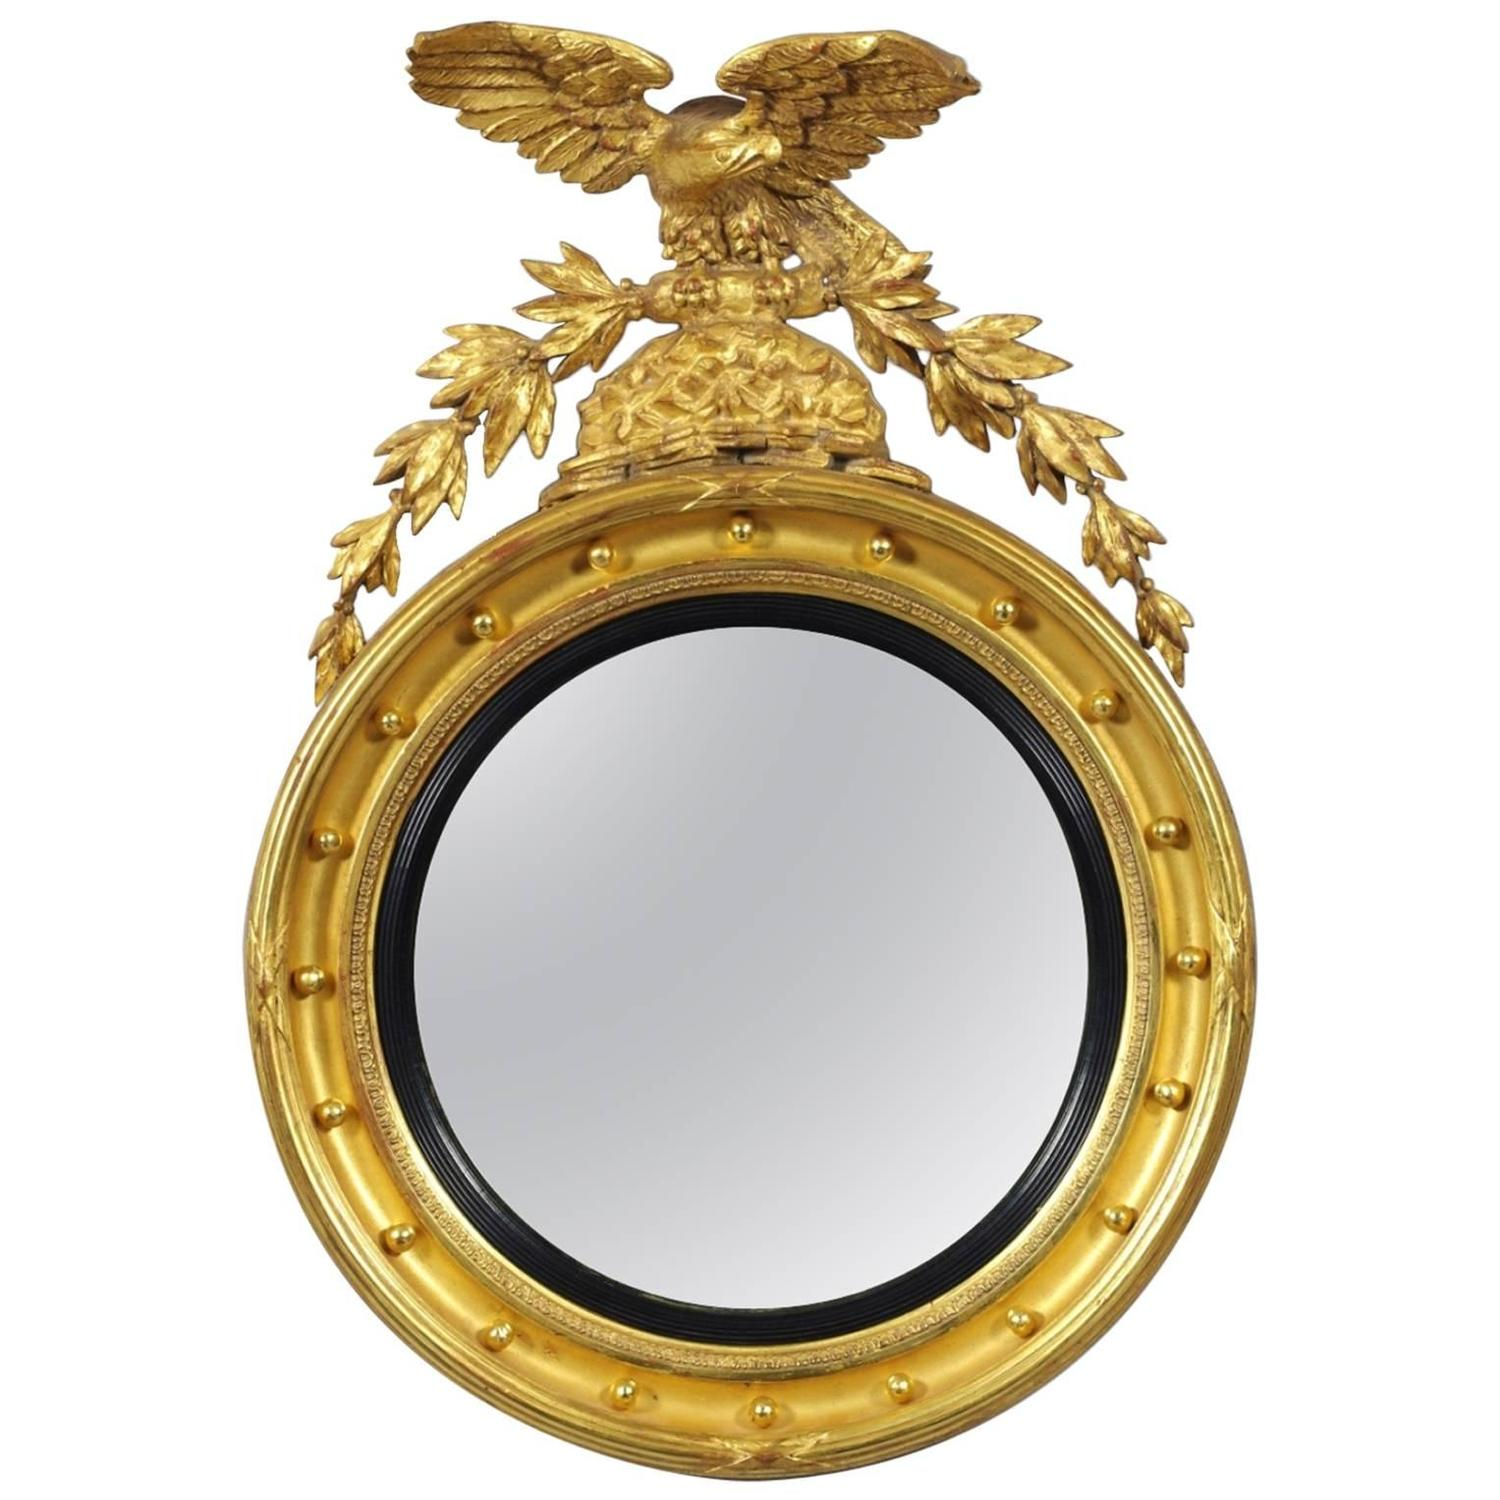 Regency convex mirror at 1stdibs for Convex mirror